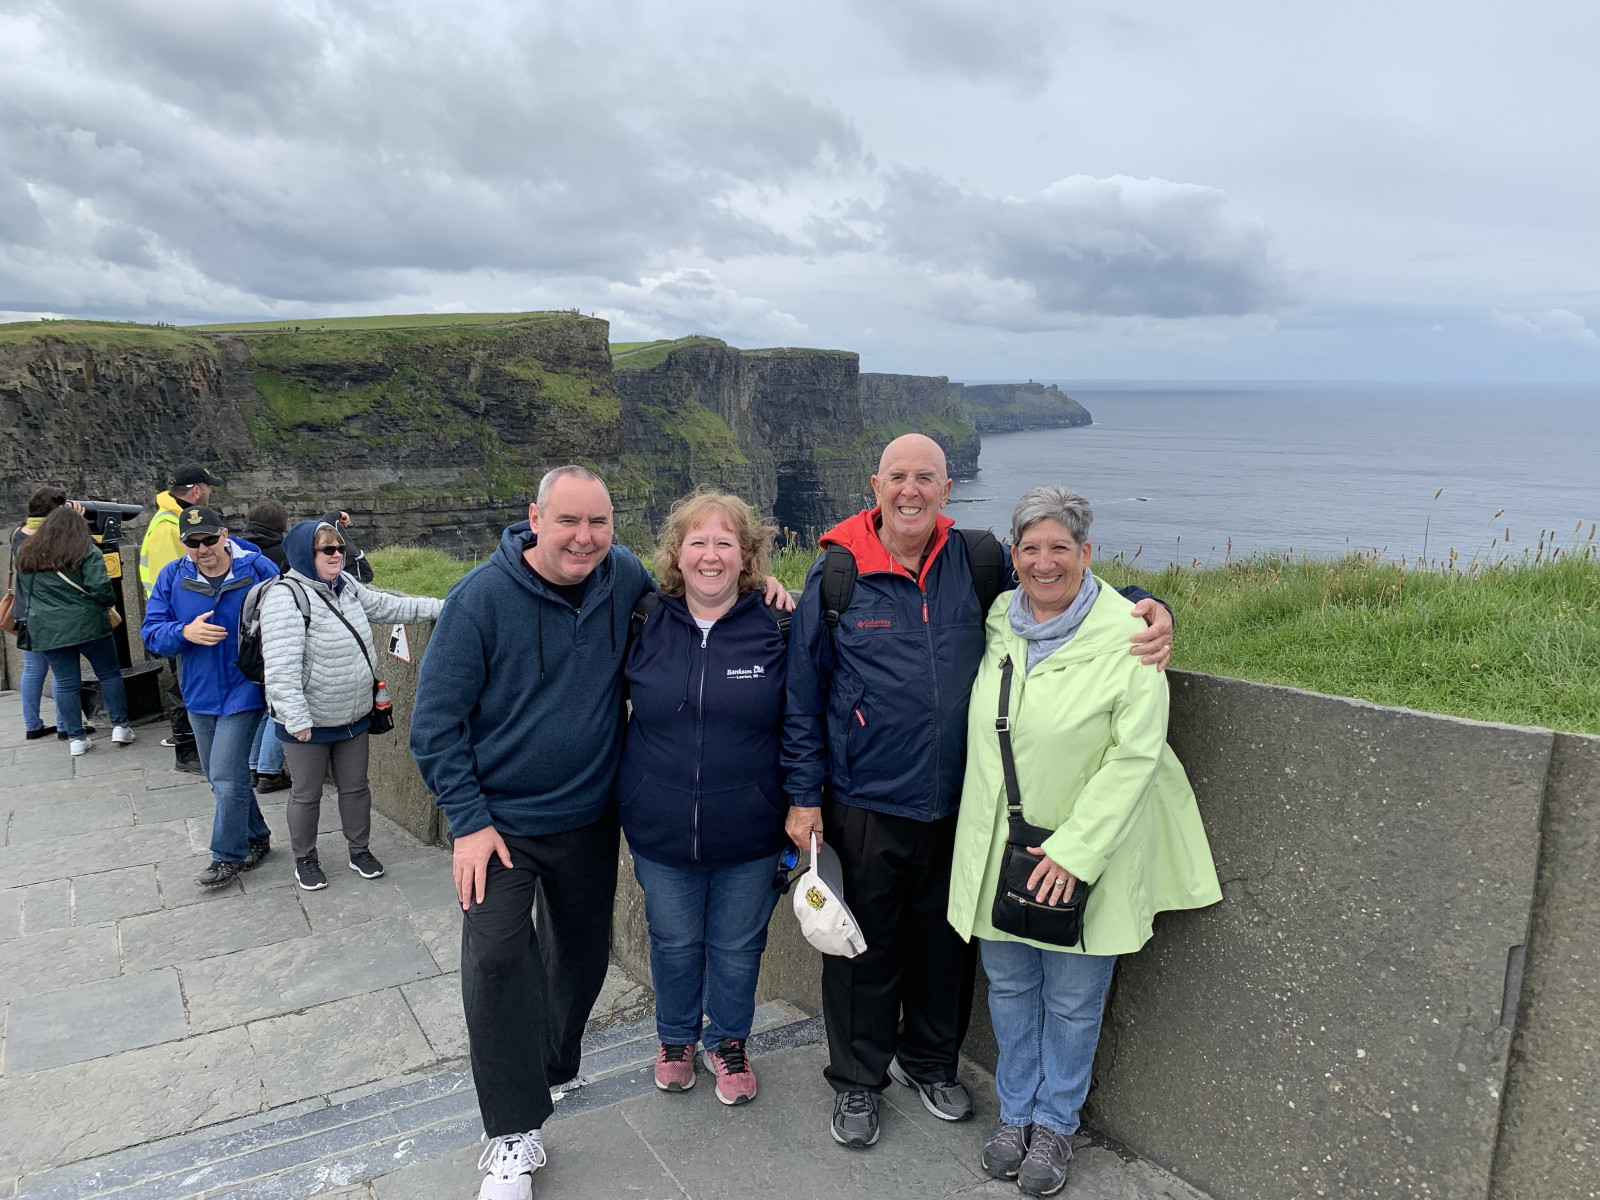 Geinoskys-Stockovers-at-the-Cliffs-of-Moher